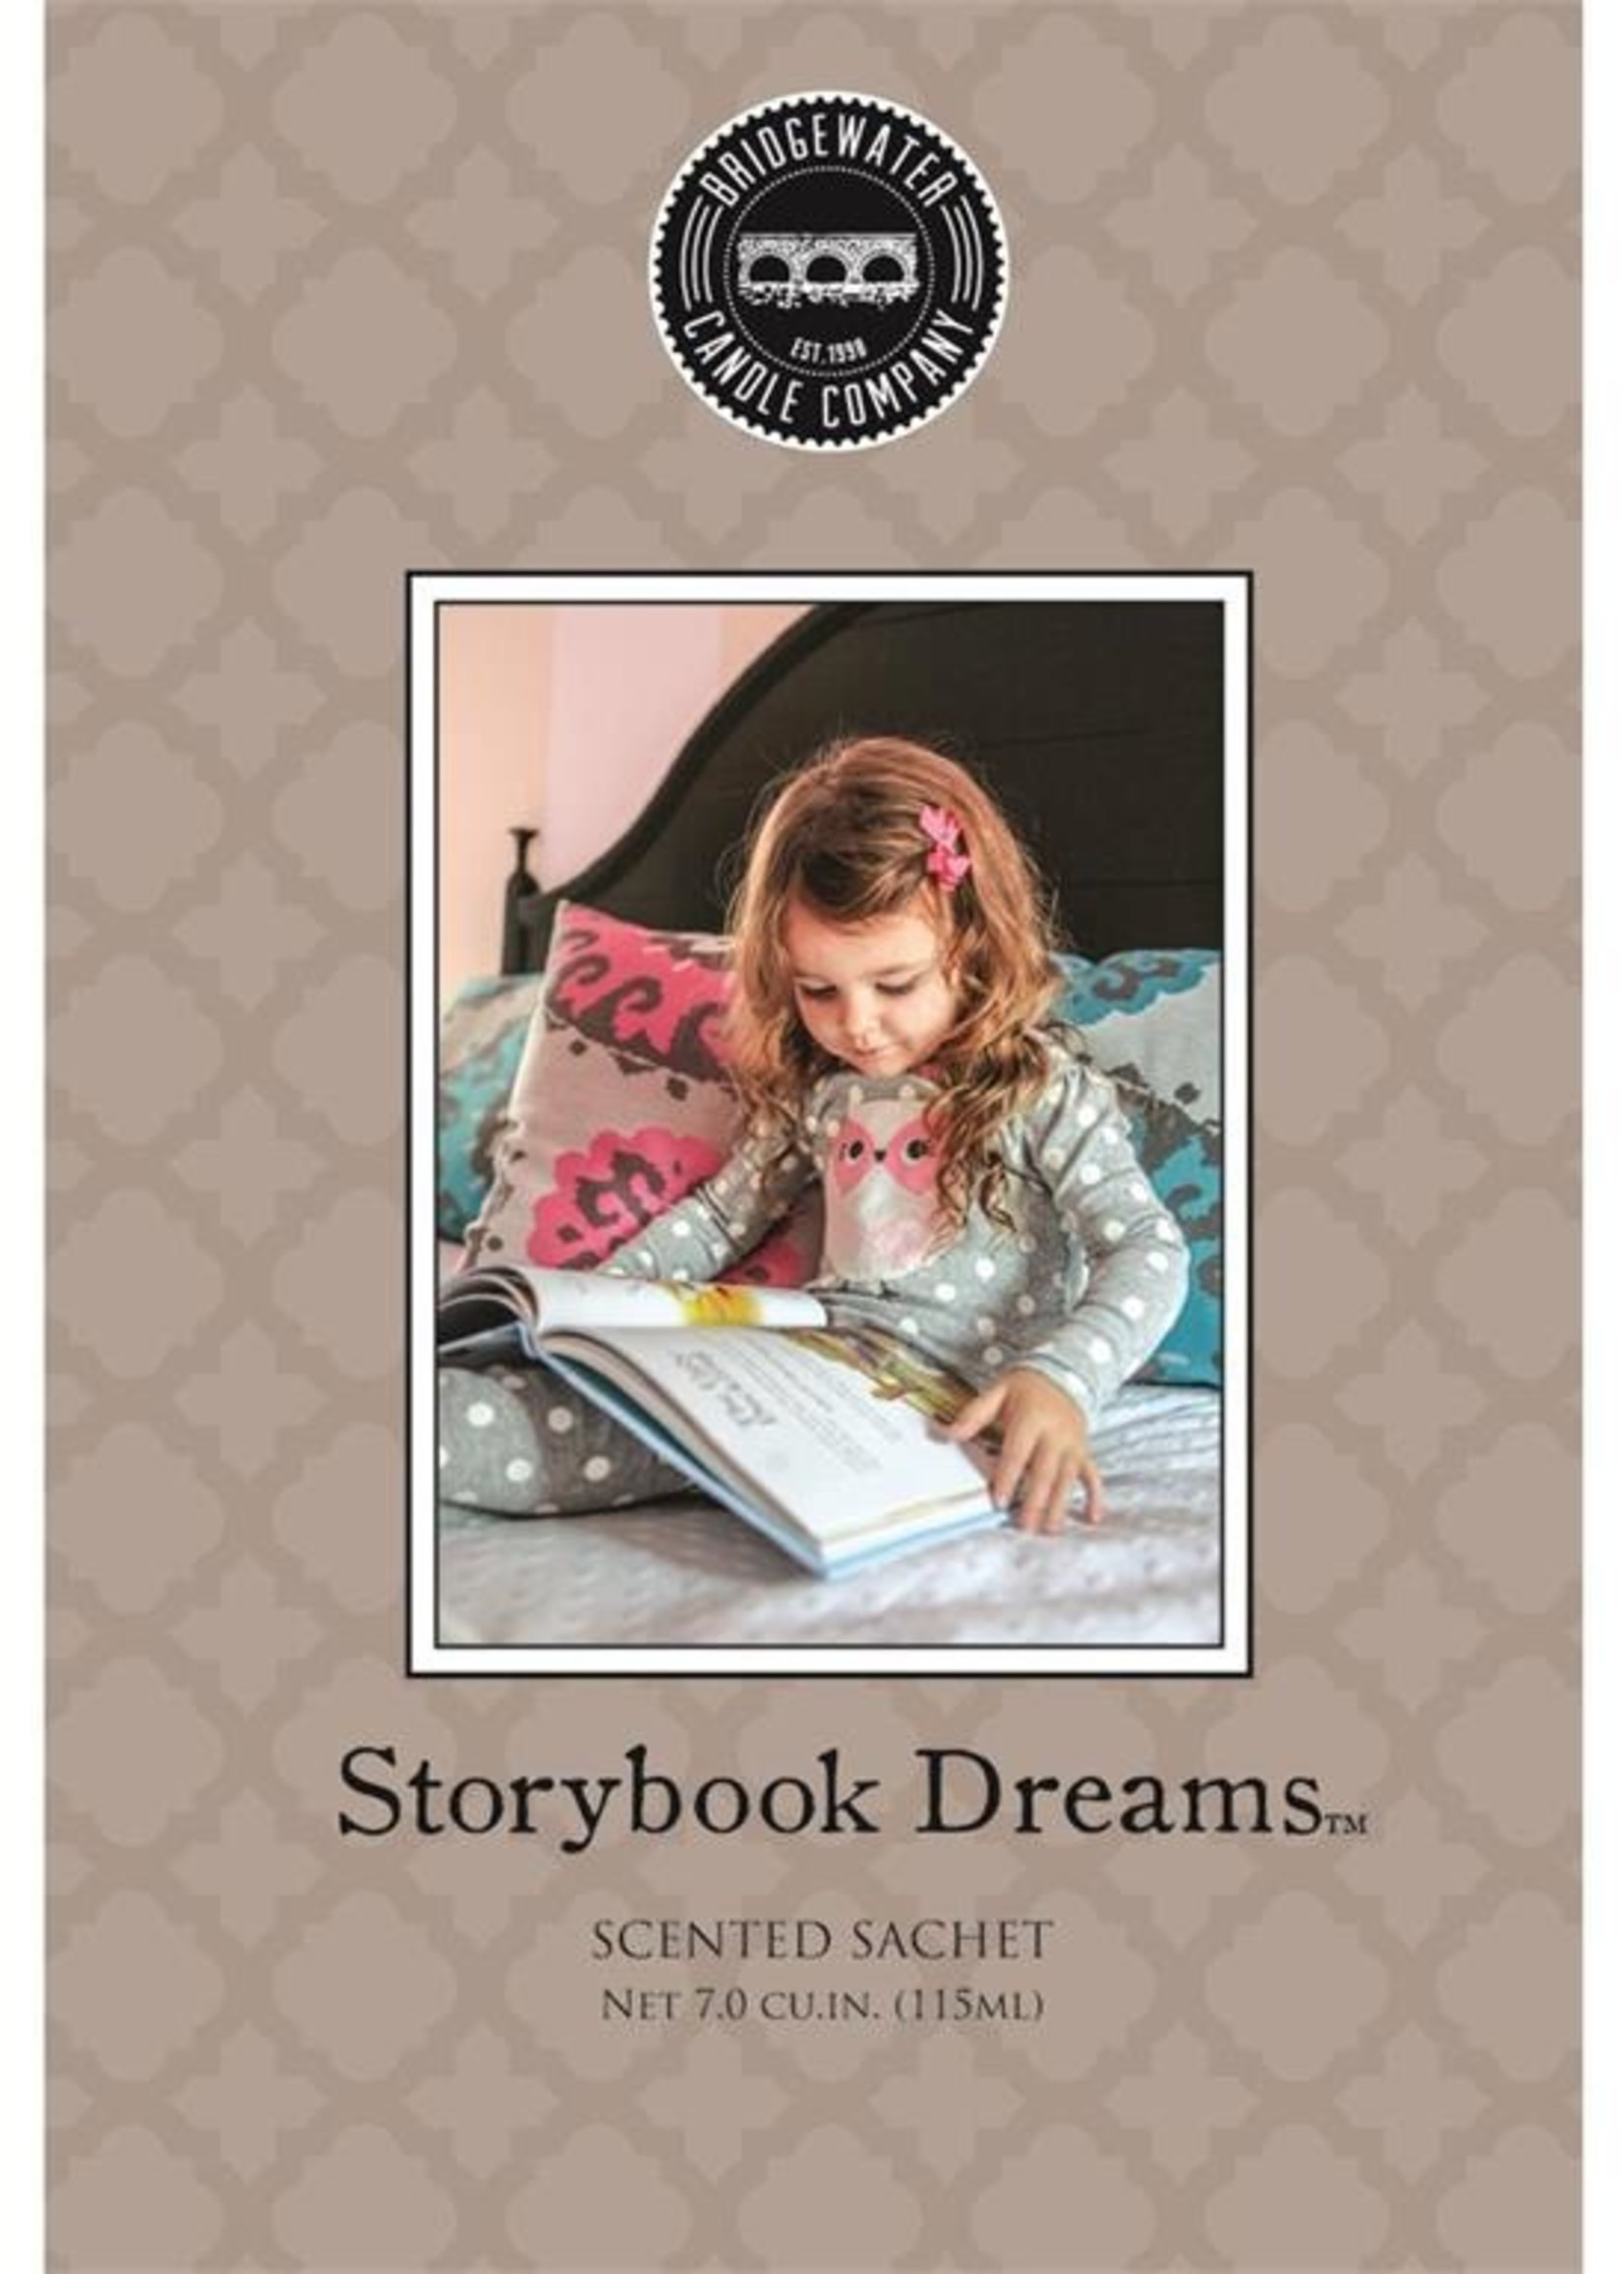 Bridgewater Sachet Storybook dreams